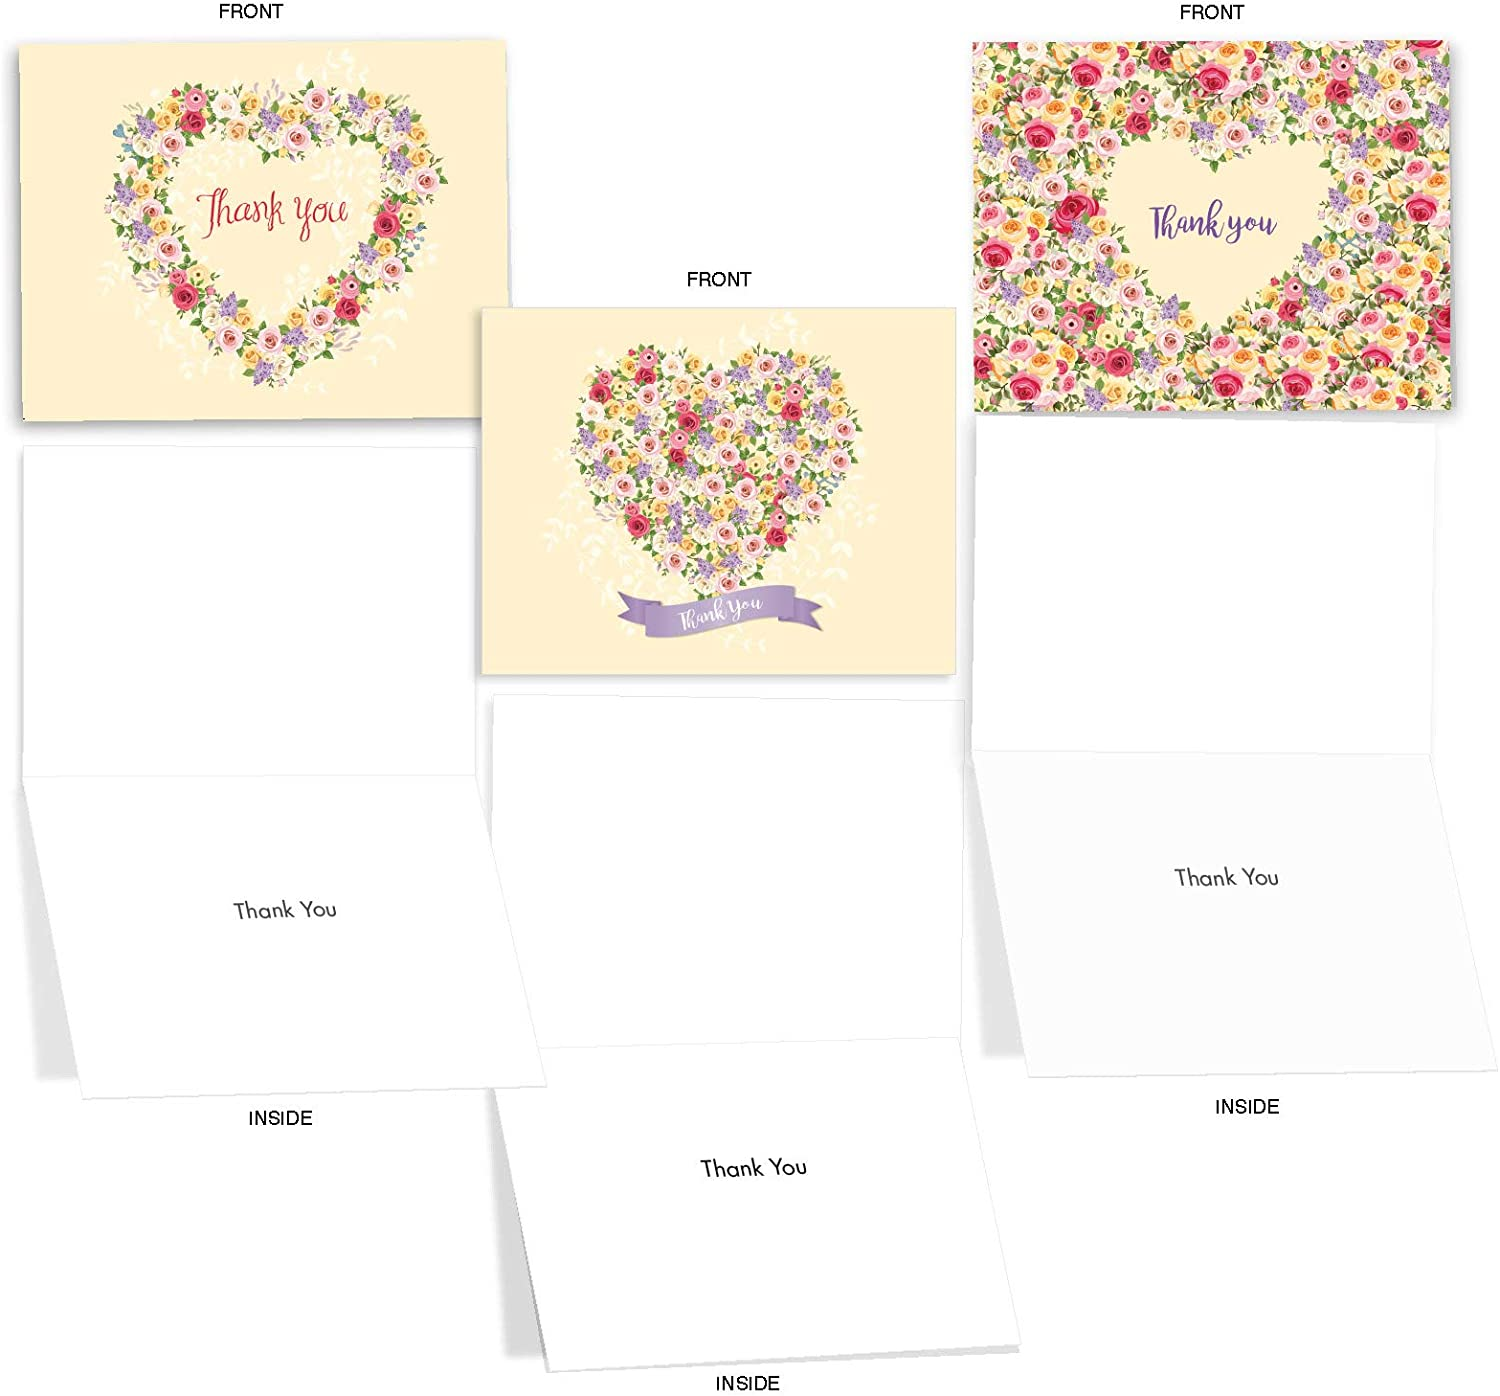 Heartfelt Notes Yoga Studio,Yoga Instructor Kindness Notes Gracious Note Cards Thank You Flat Card Gratitude Cards Heart with Flowers